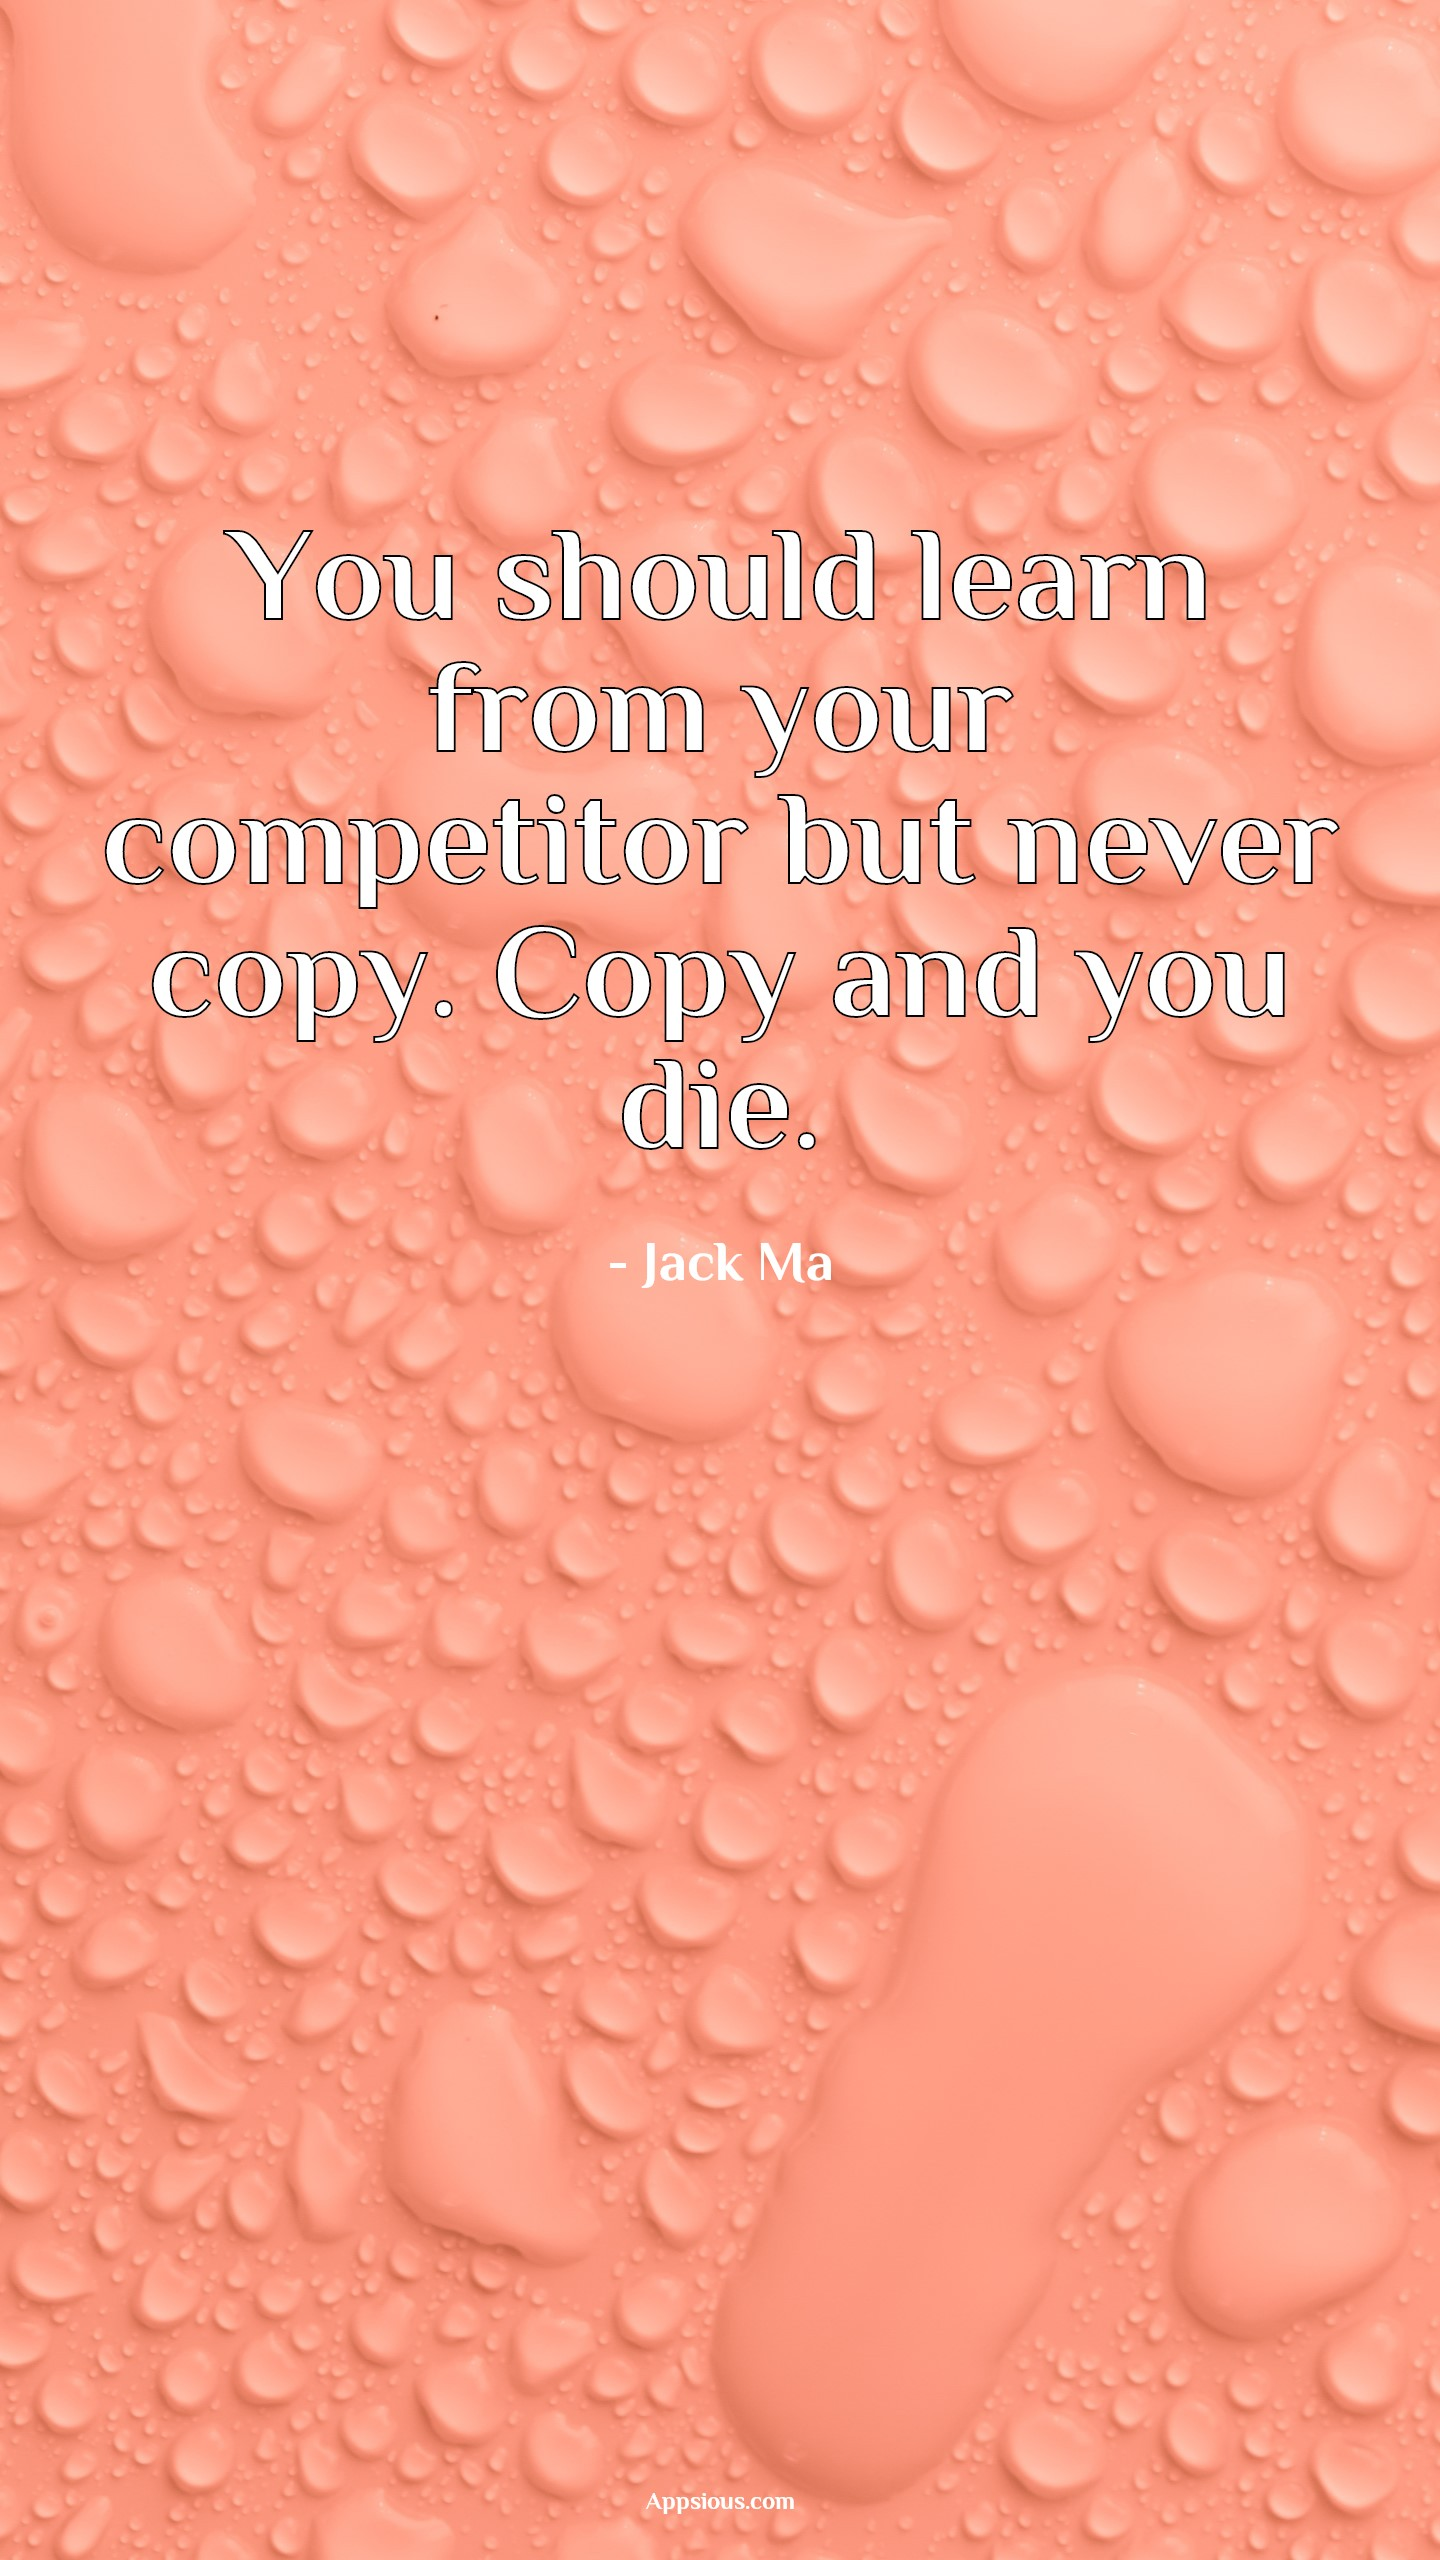 You should learn from your competitor but never copy. Copy and you die.